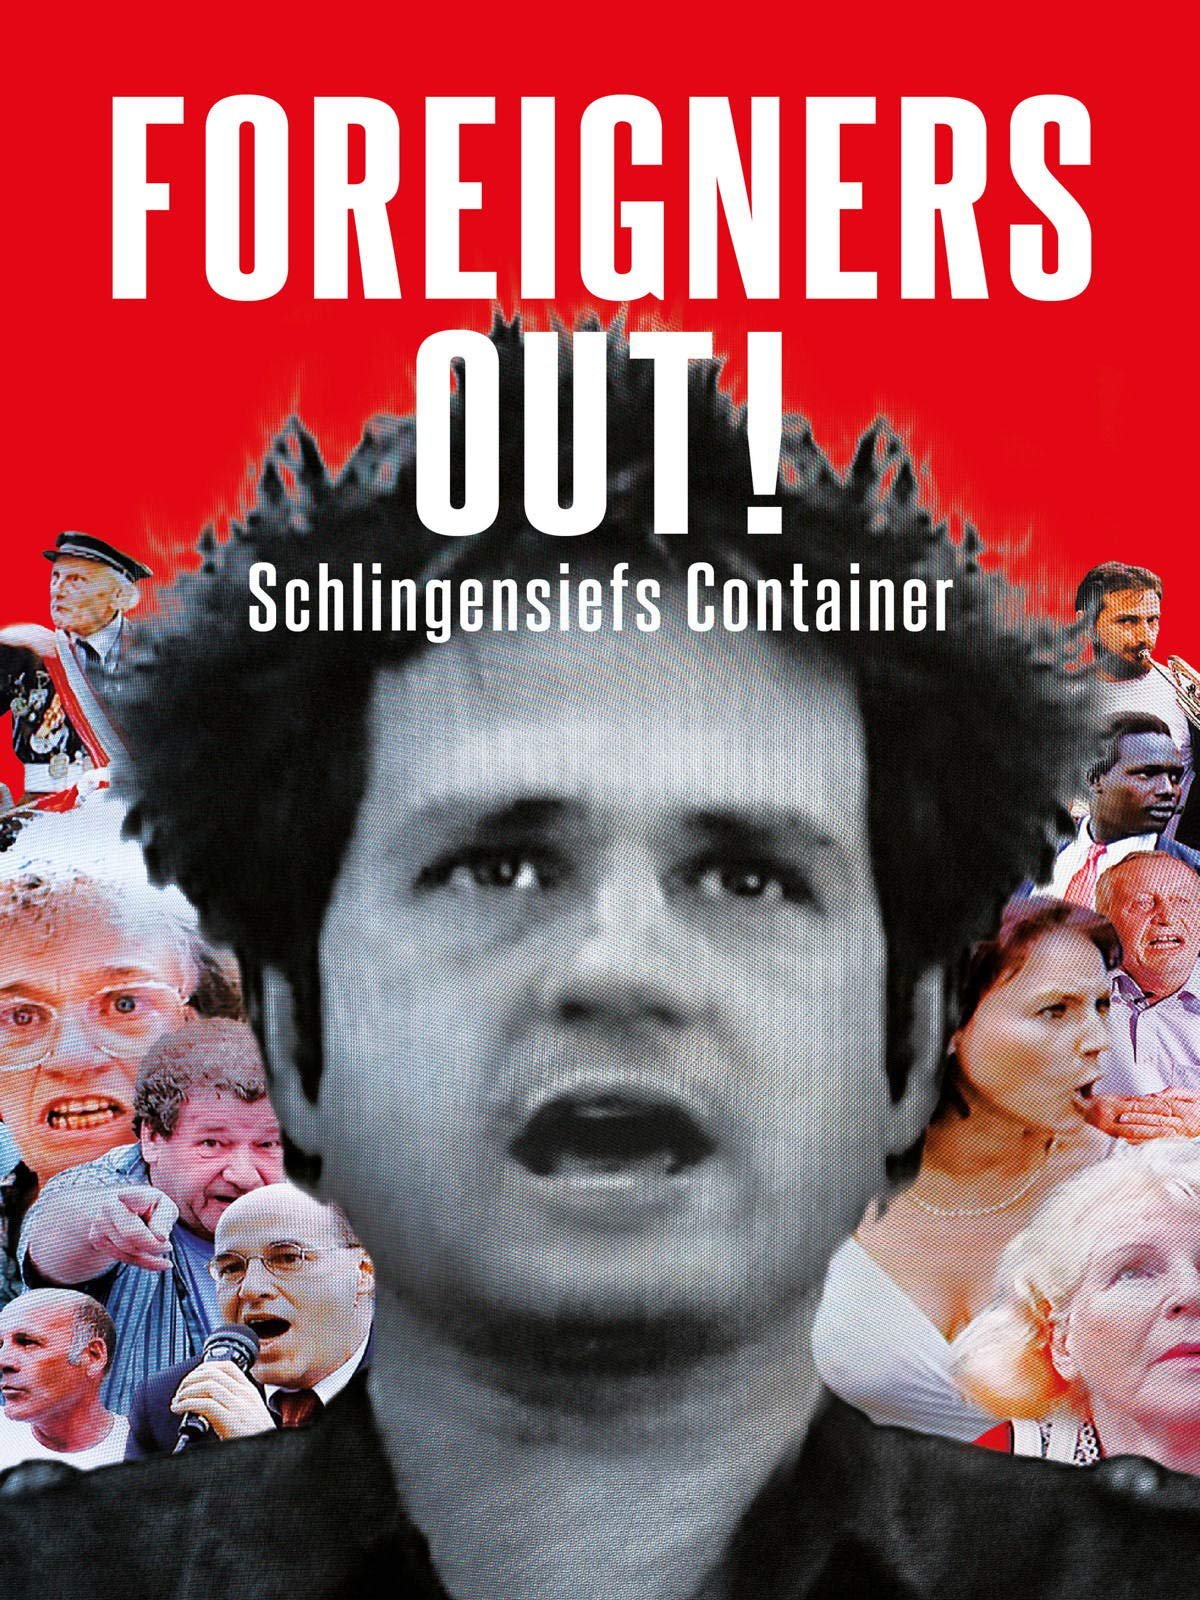 Foreigners out! Schlingensiefs Container on Amazon Prime Video UK